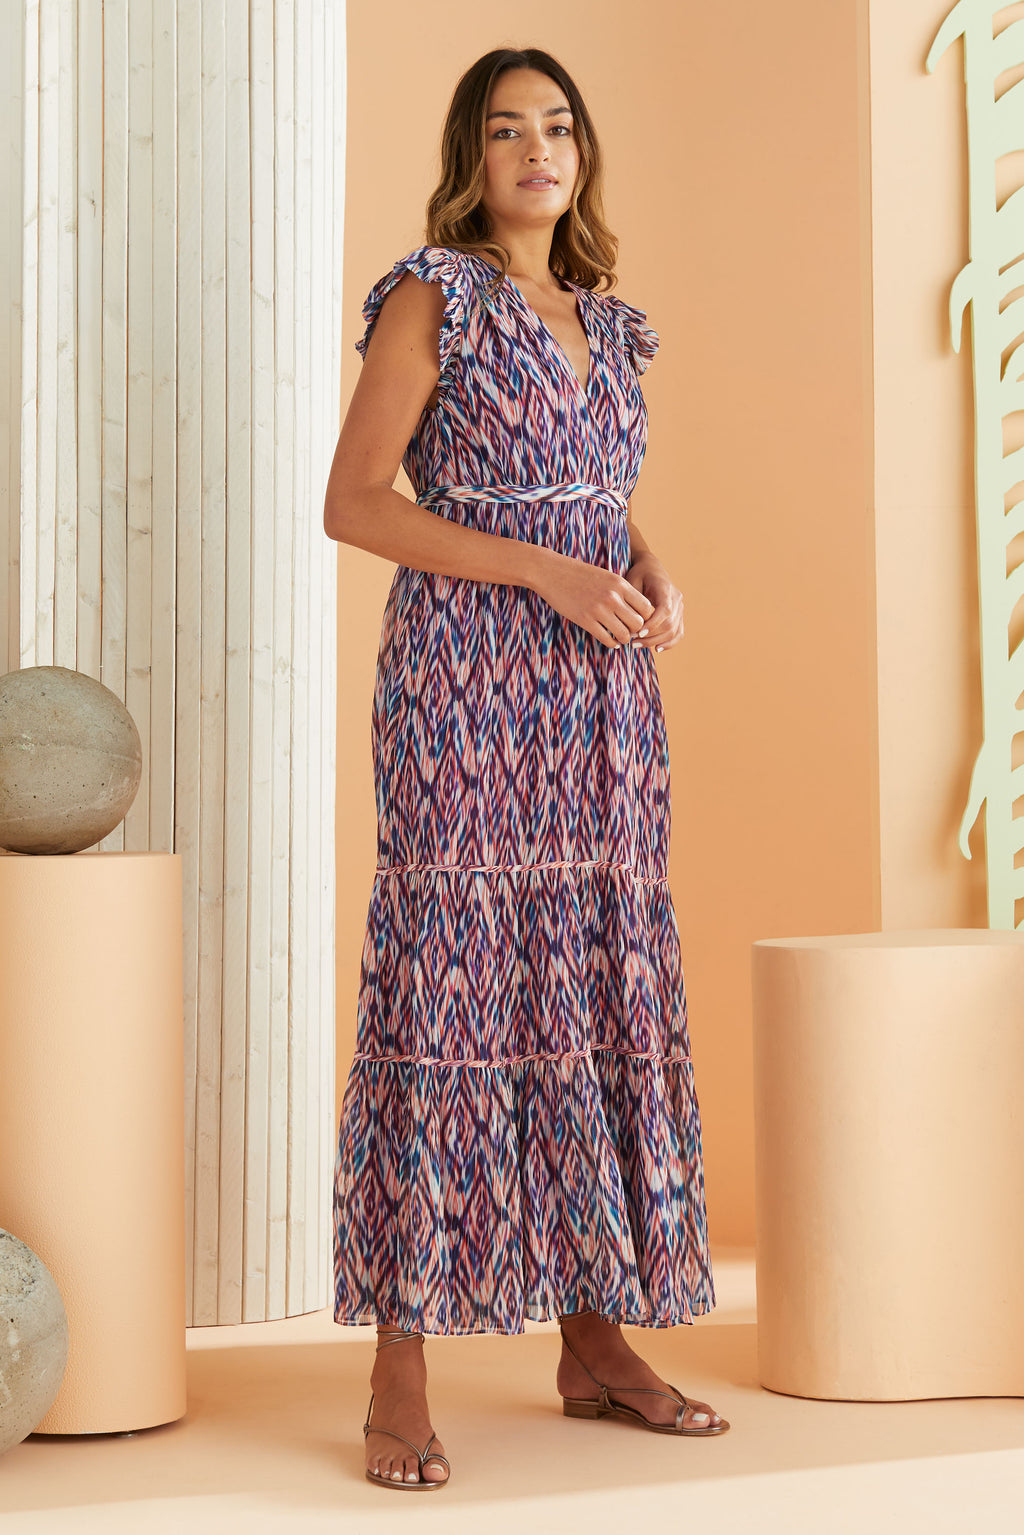 model wearing maxi dress with ikat print